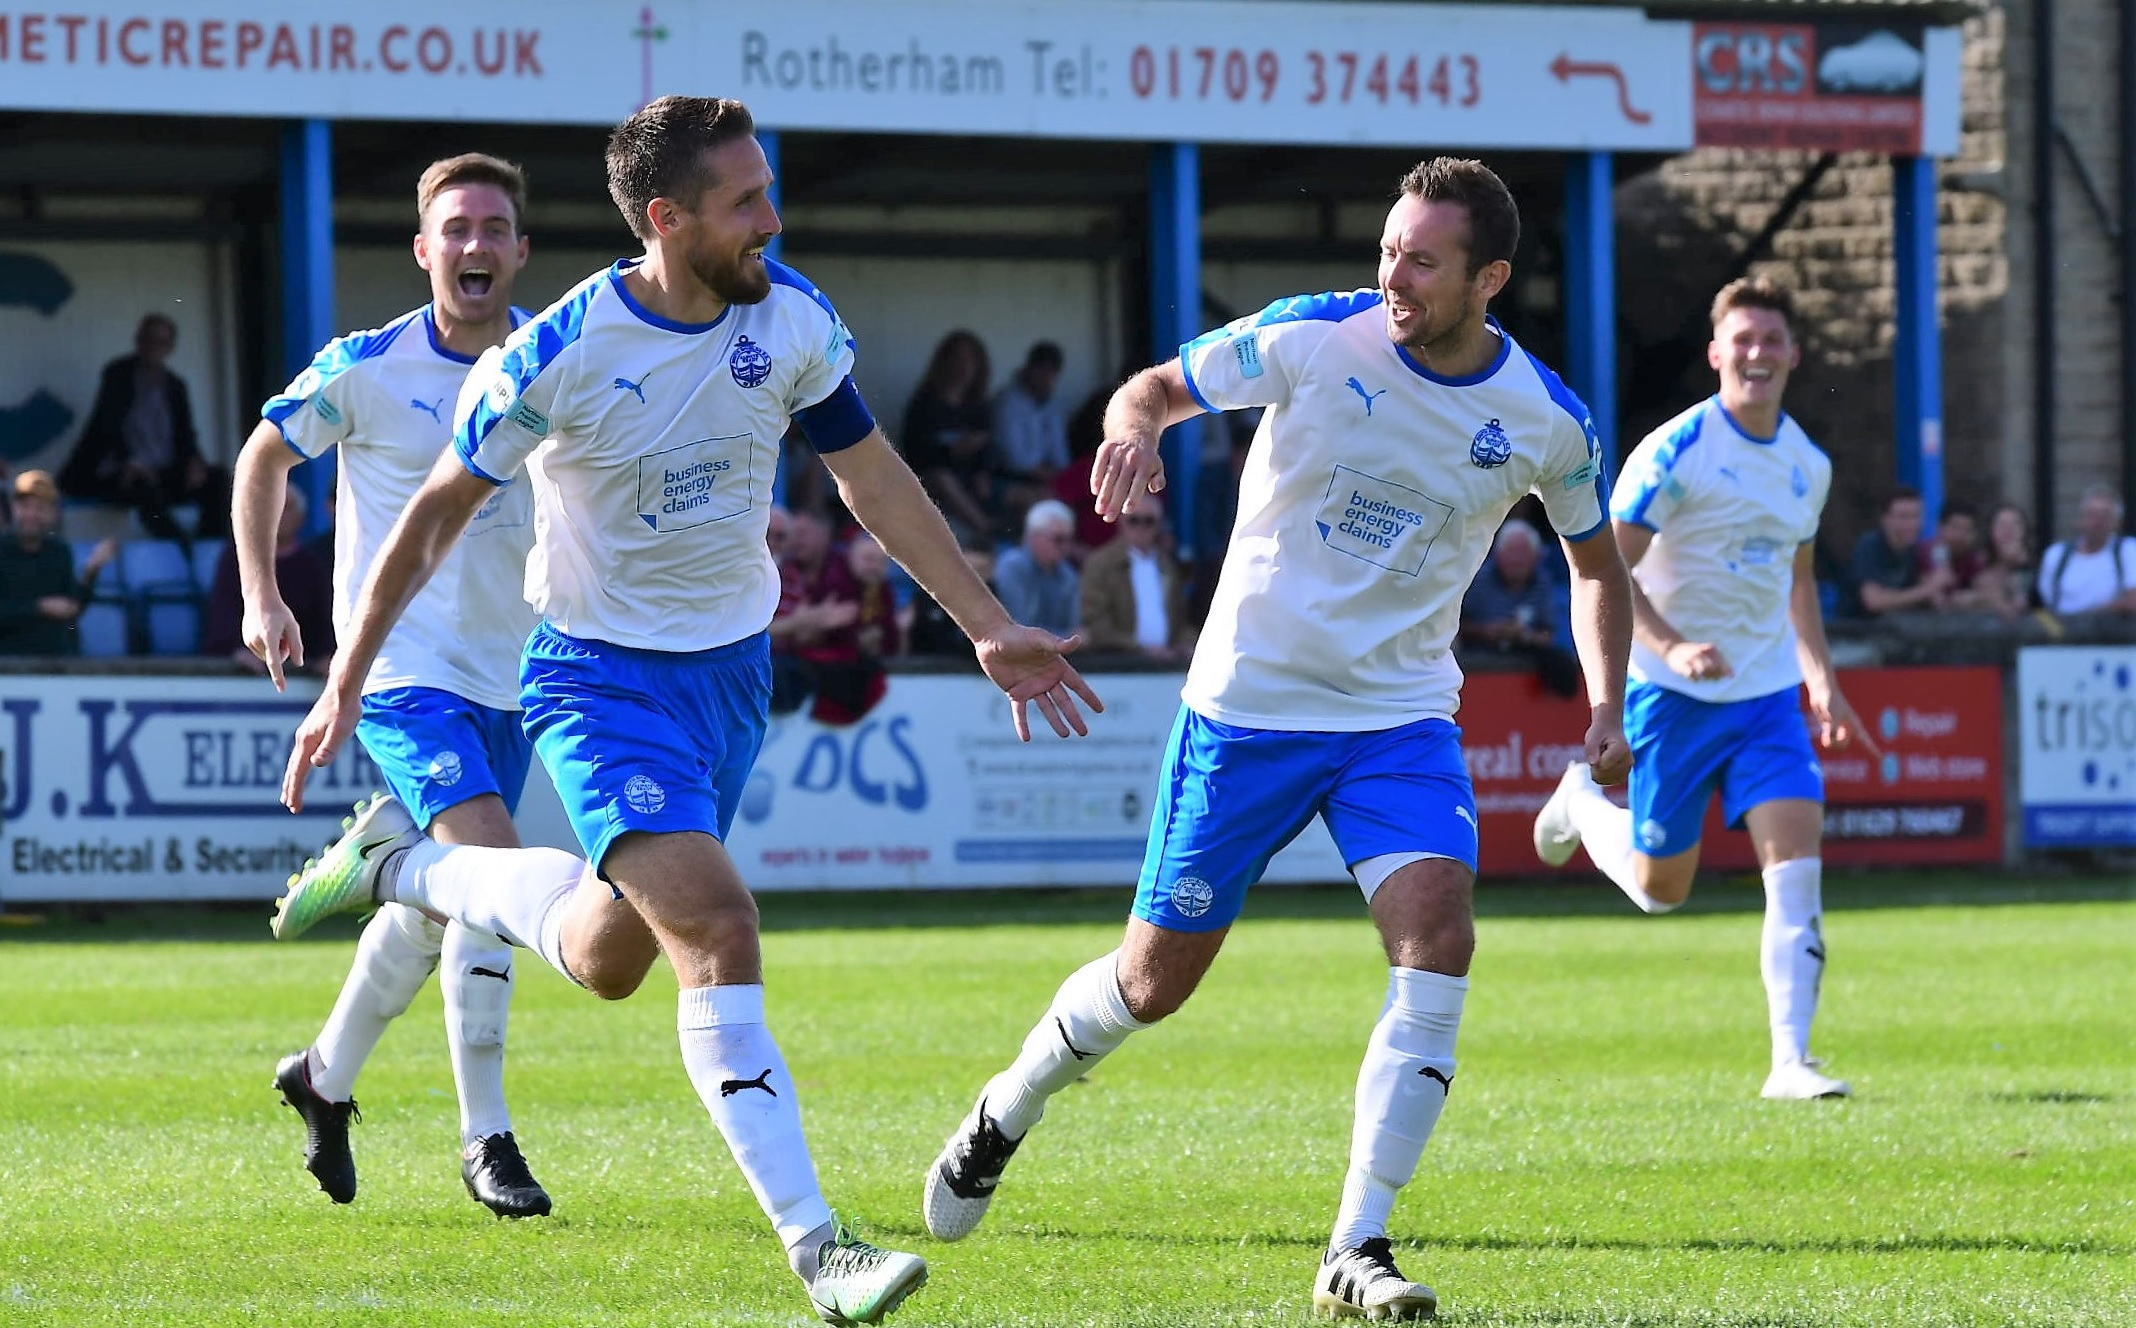 Matlock Town 1-2 South Shields: Superb Mariners end hosts' unbeaten record